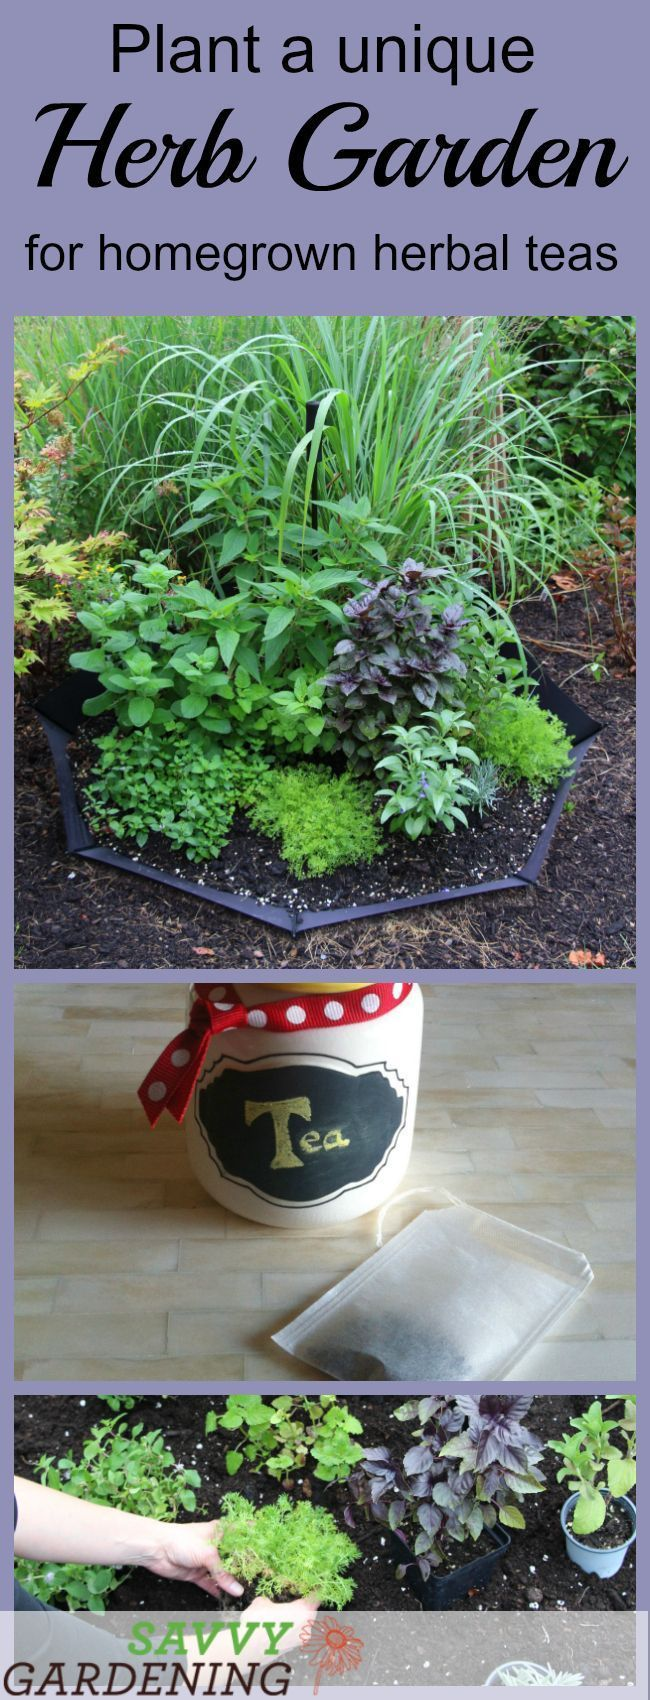 Grow a unique herb garden for homegrown herbal teas using this cool up-cycyling …